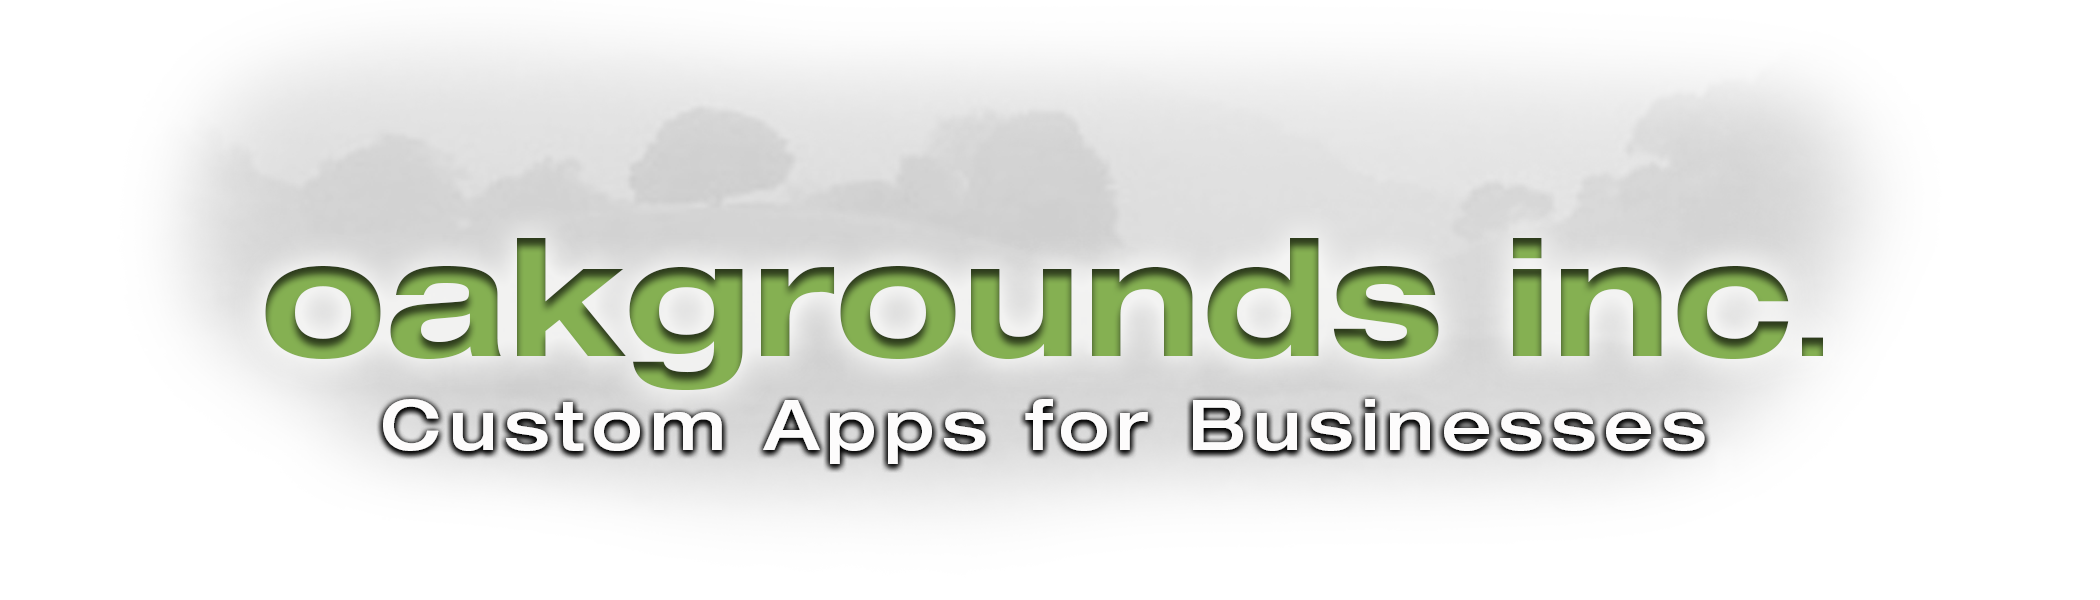 Apps & FileMaker Business Consulting by Oakgrounds